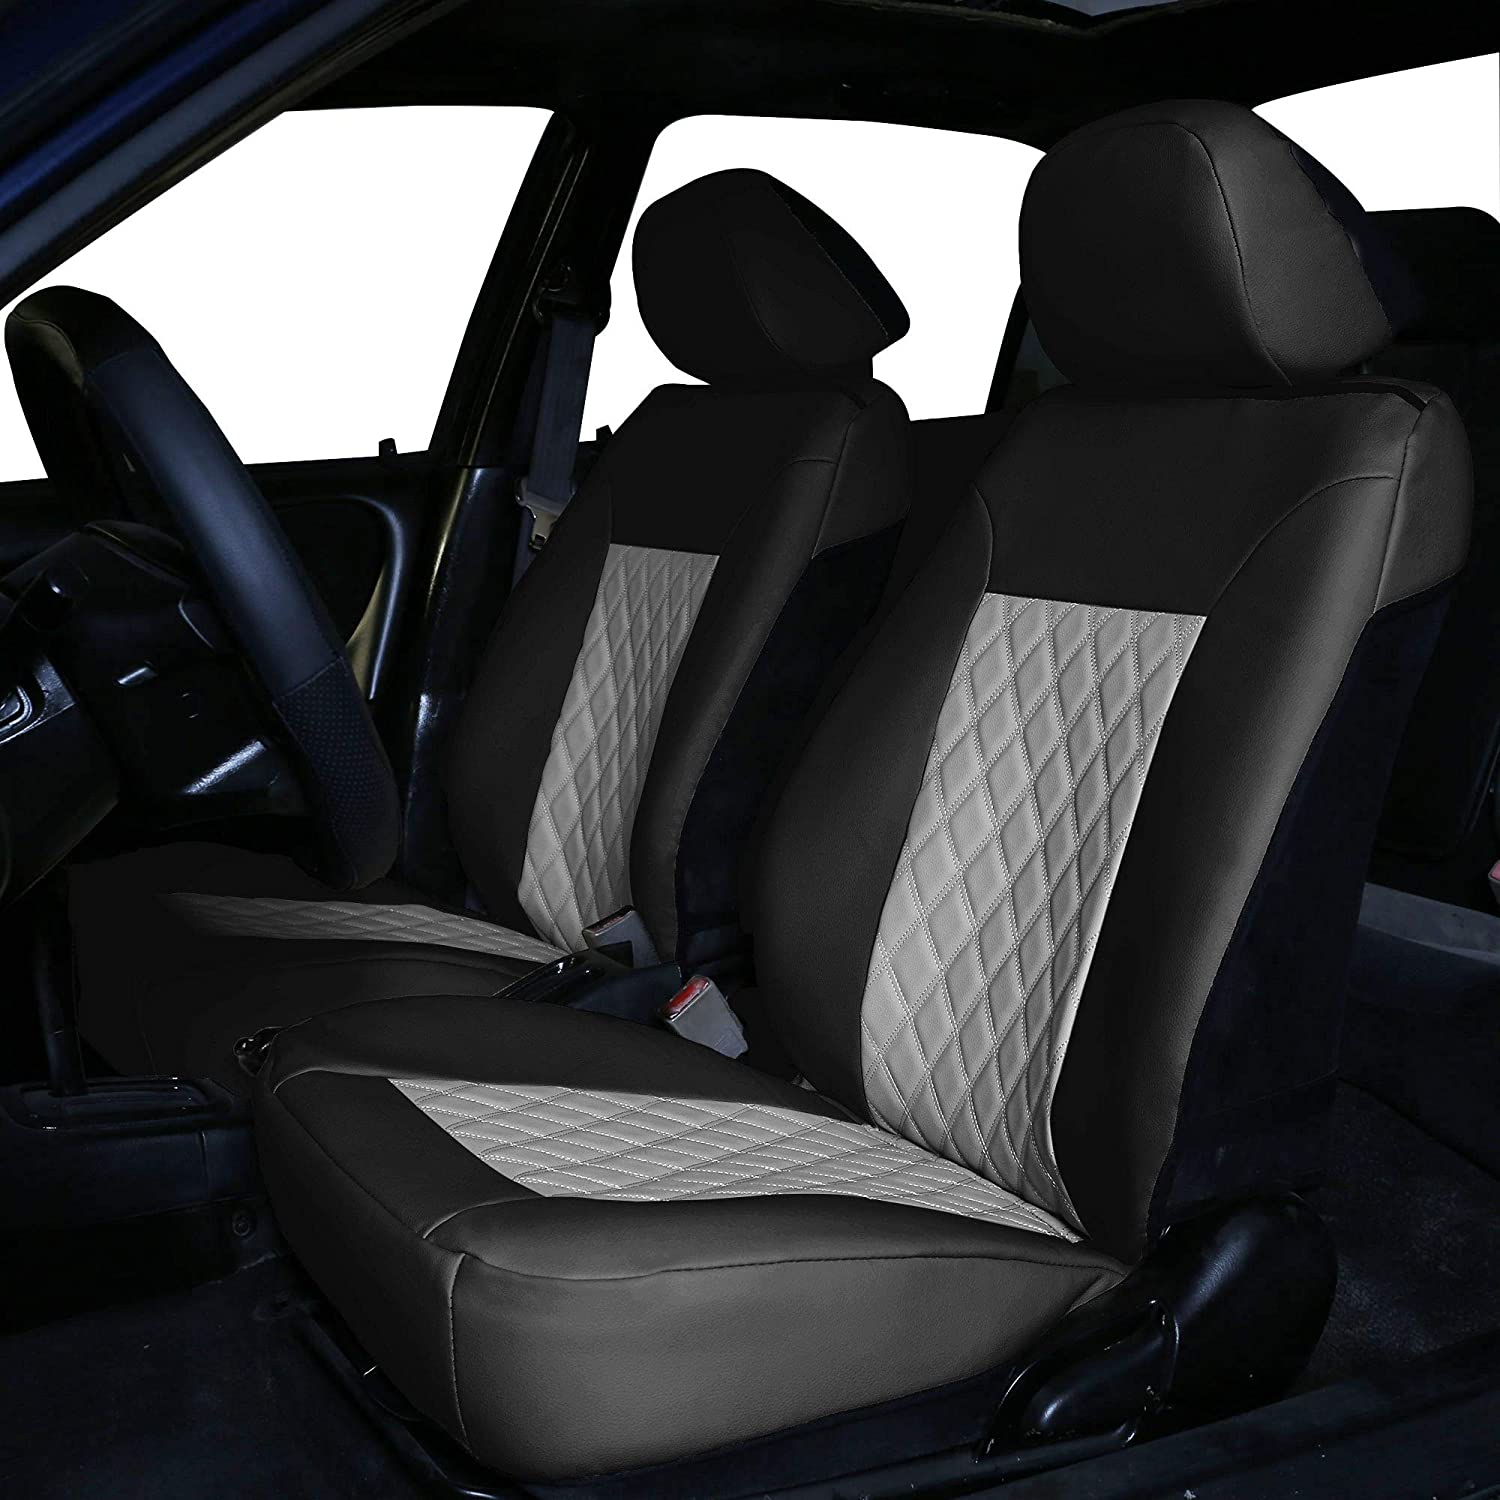 FH Group PU88GRAYBLACK102 Quality Faux Leather Diamond Pattern Car Seat Cushions – Front Set, Gray/Black- Faux Leather (PU088GRAYBLACK102)